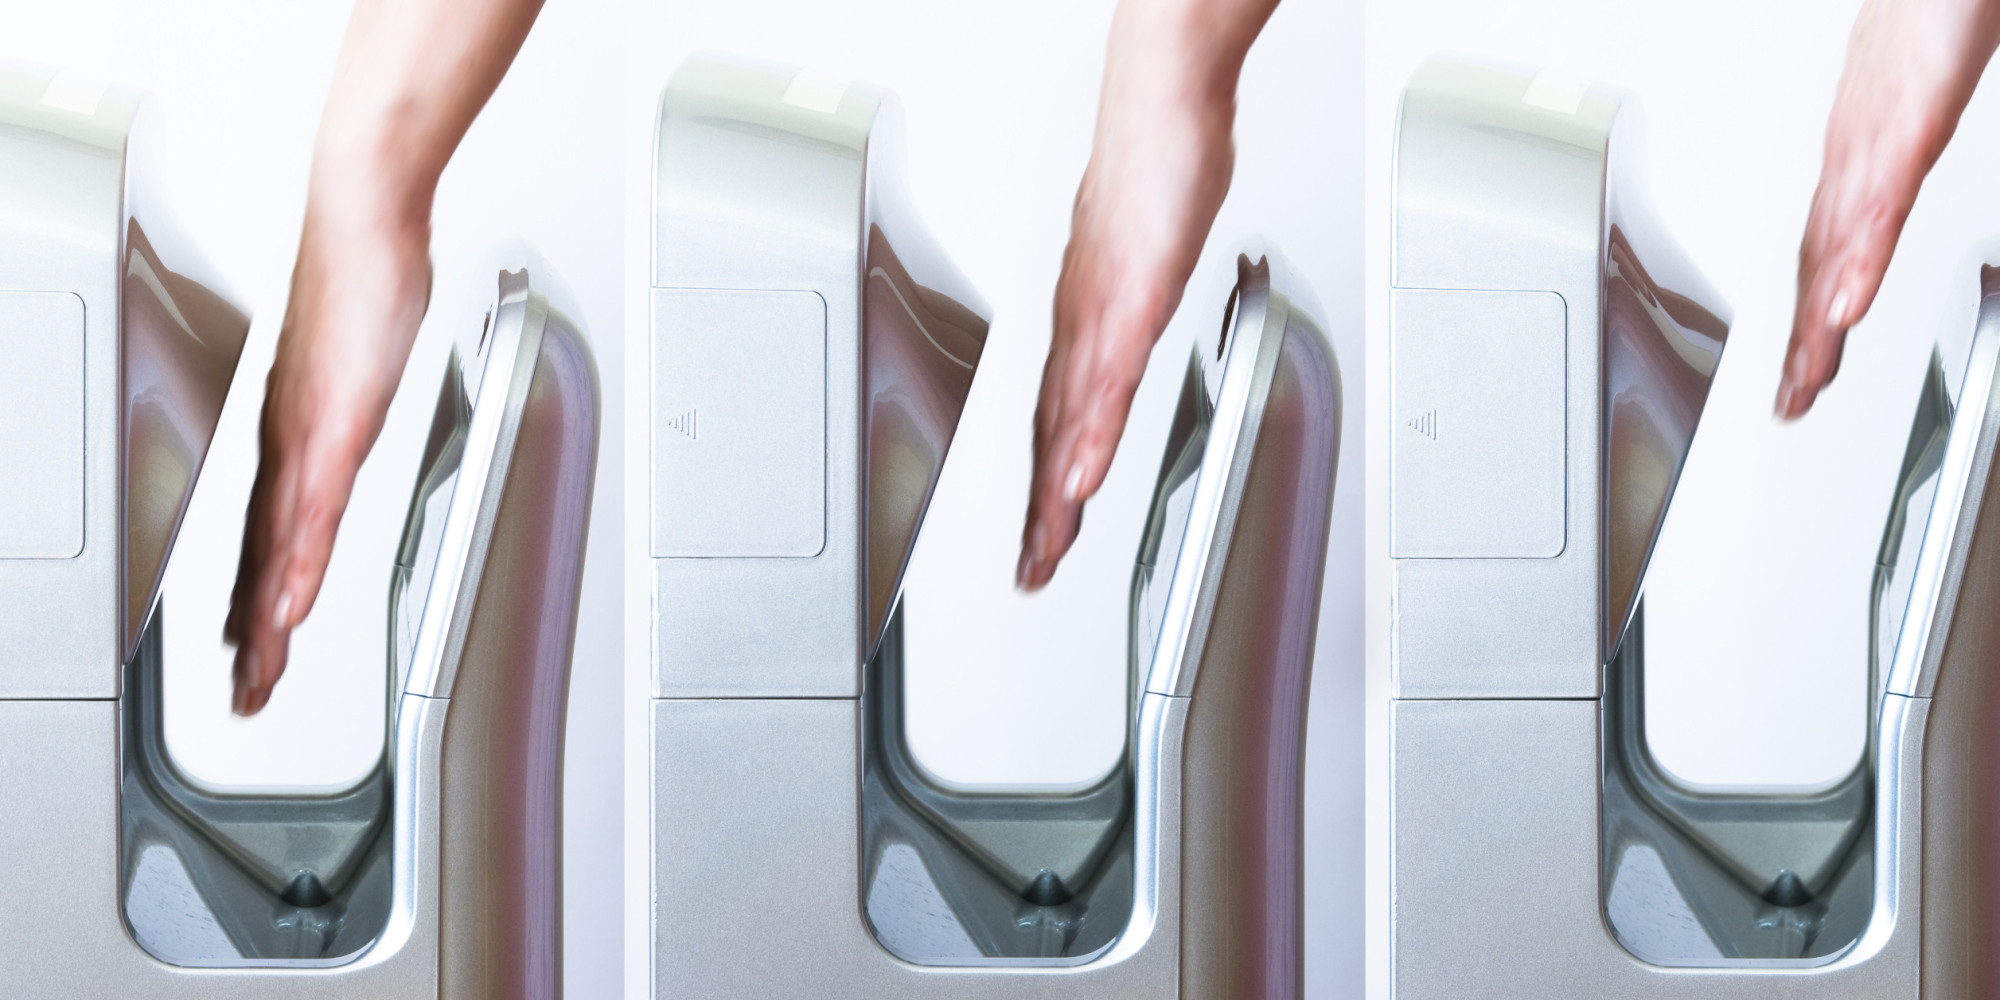 New Study Shows Bathroom Hand Dryers Harbor High Levels Of